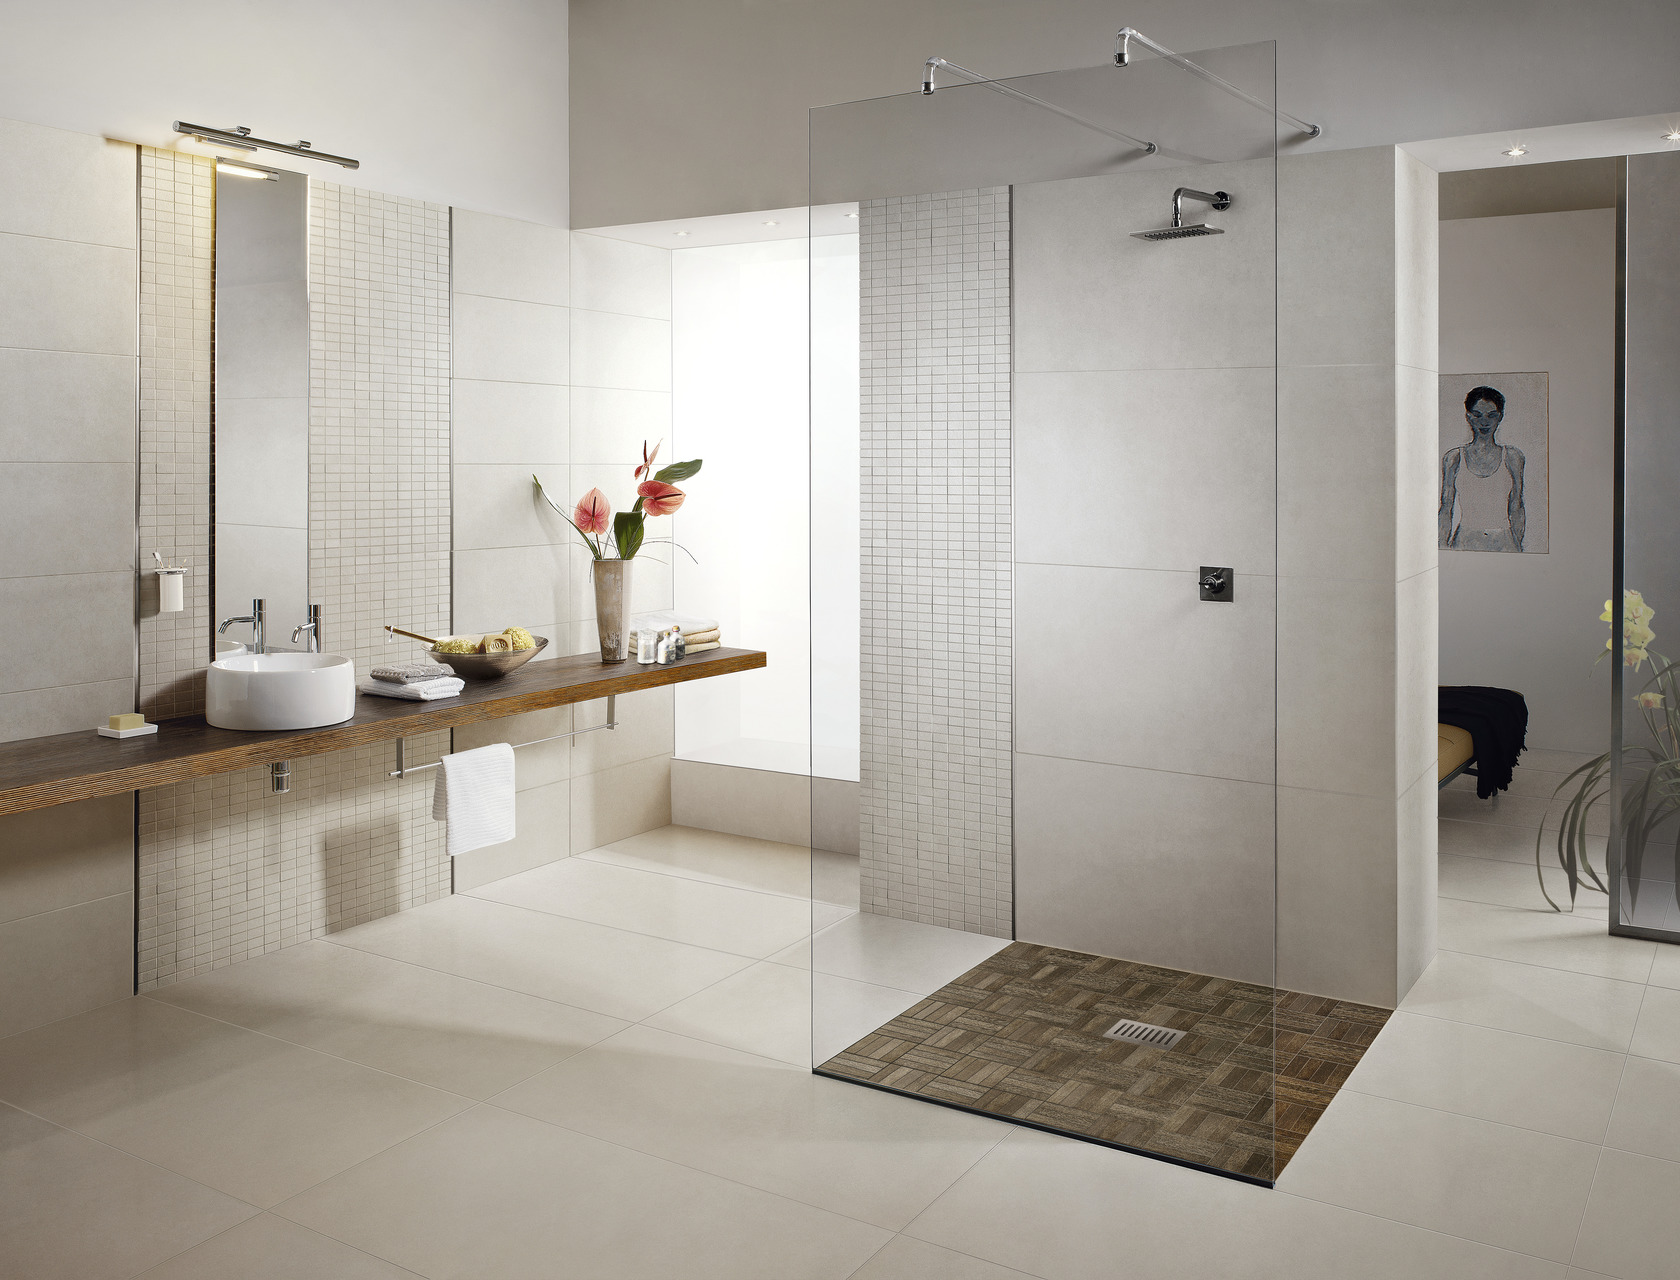 Limra White Stone Effect Tiles For Indoor And Outdoor